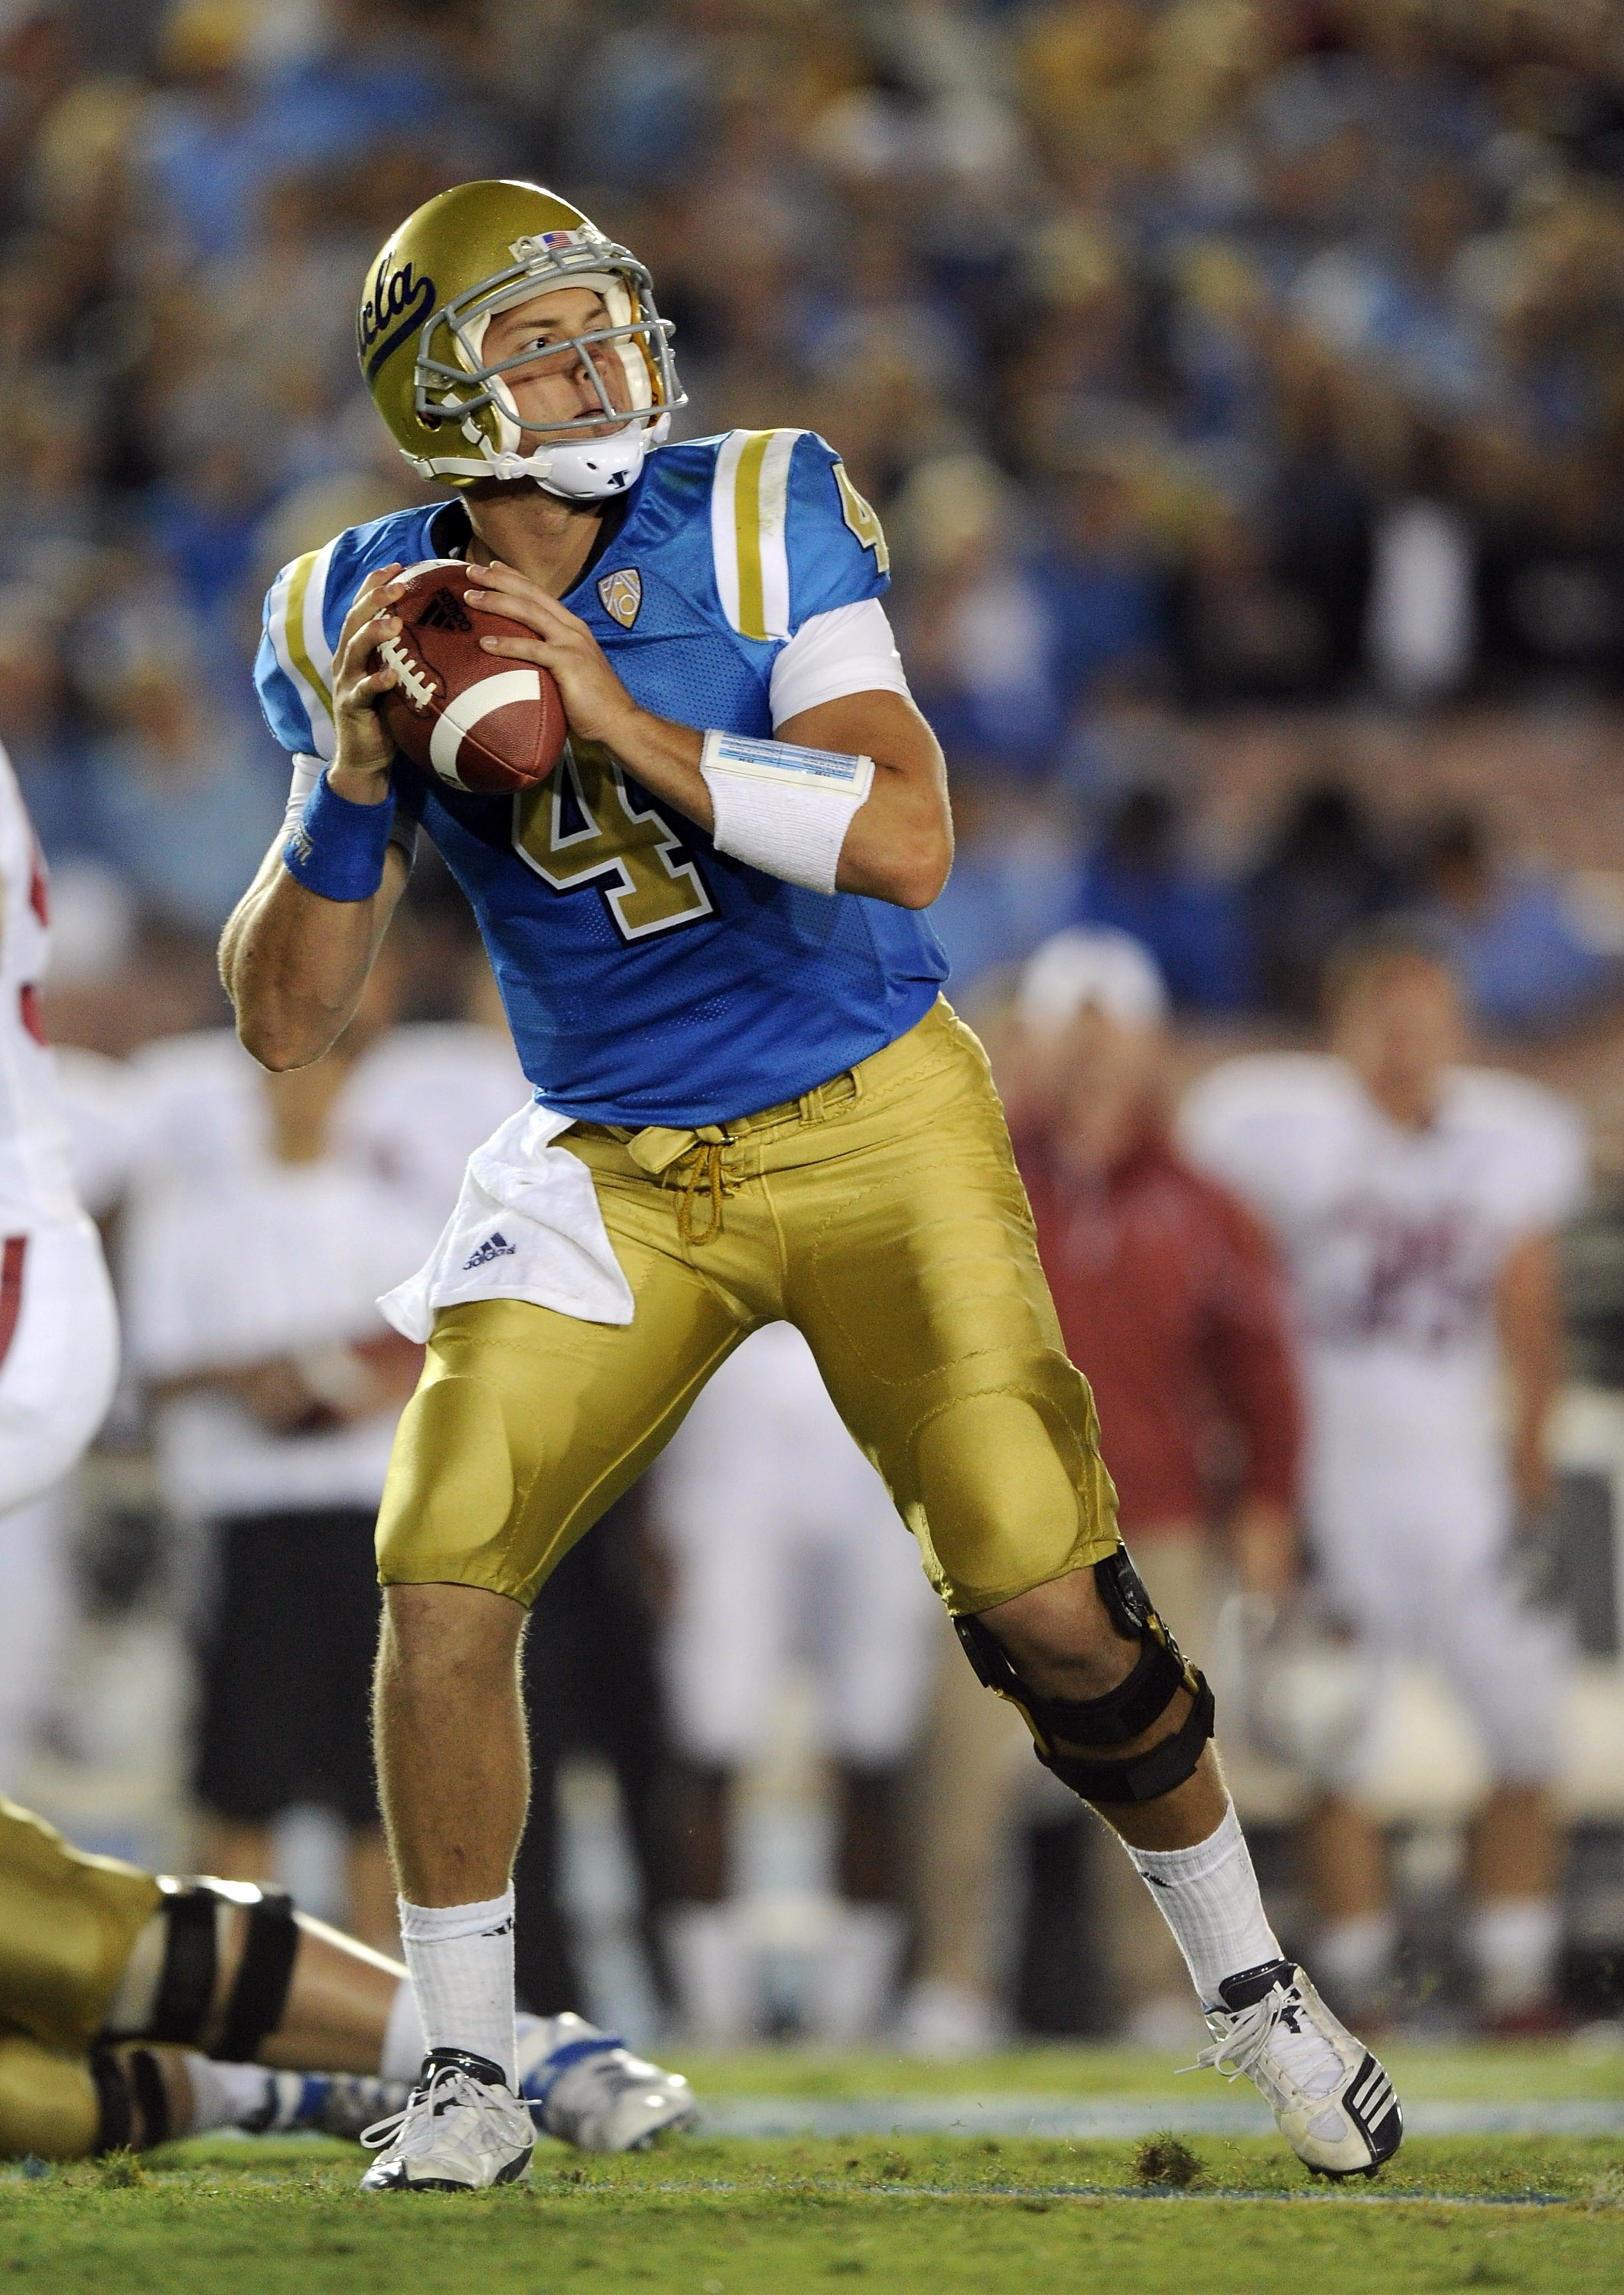 PASADENA, CA - SEPTEMBER 11:  Kevin Prince #4 of UCLA prepares to throw against Stanford during the first quarter at Rose Bowl on September 11, 2010 in Pasadena, California.  (Photo by Harry How/Getty Images)